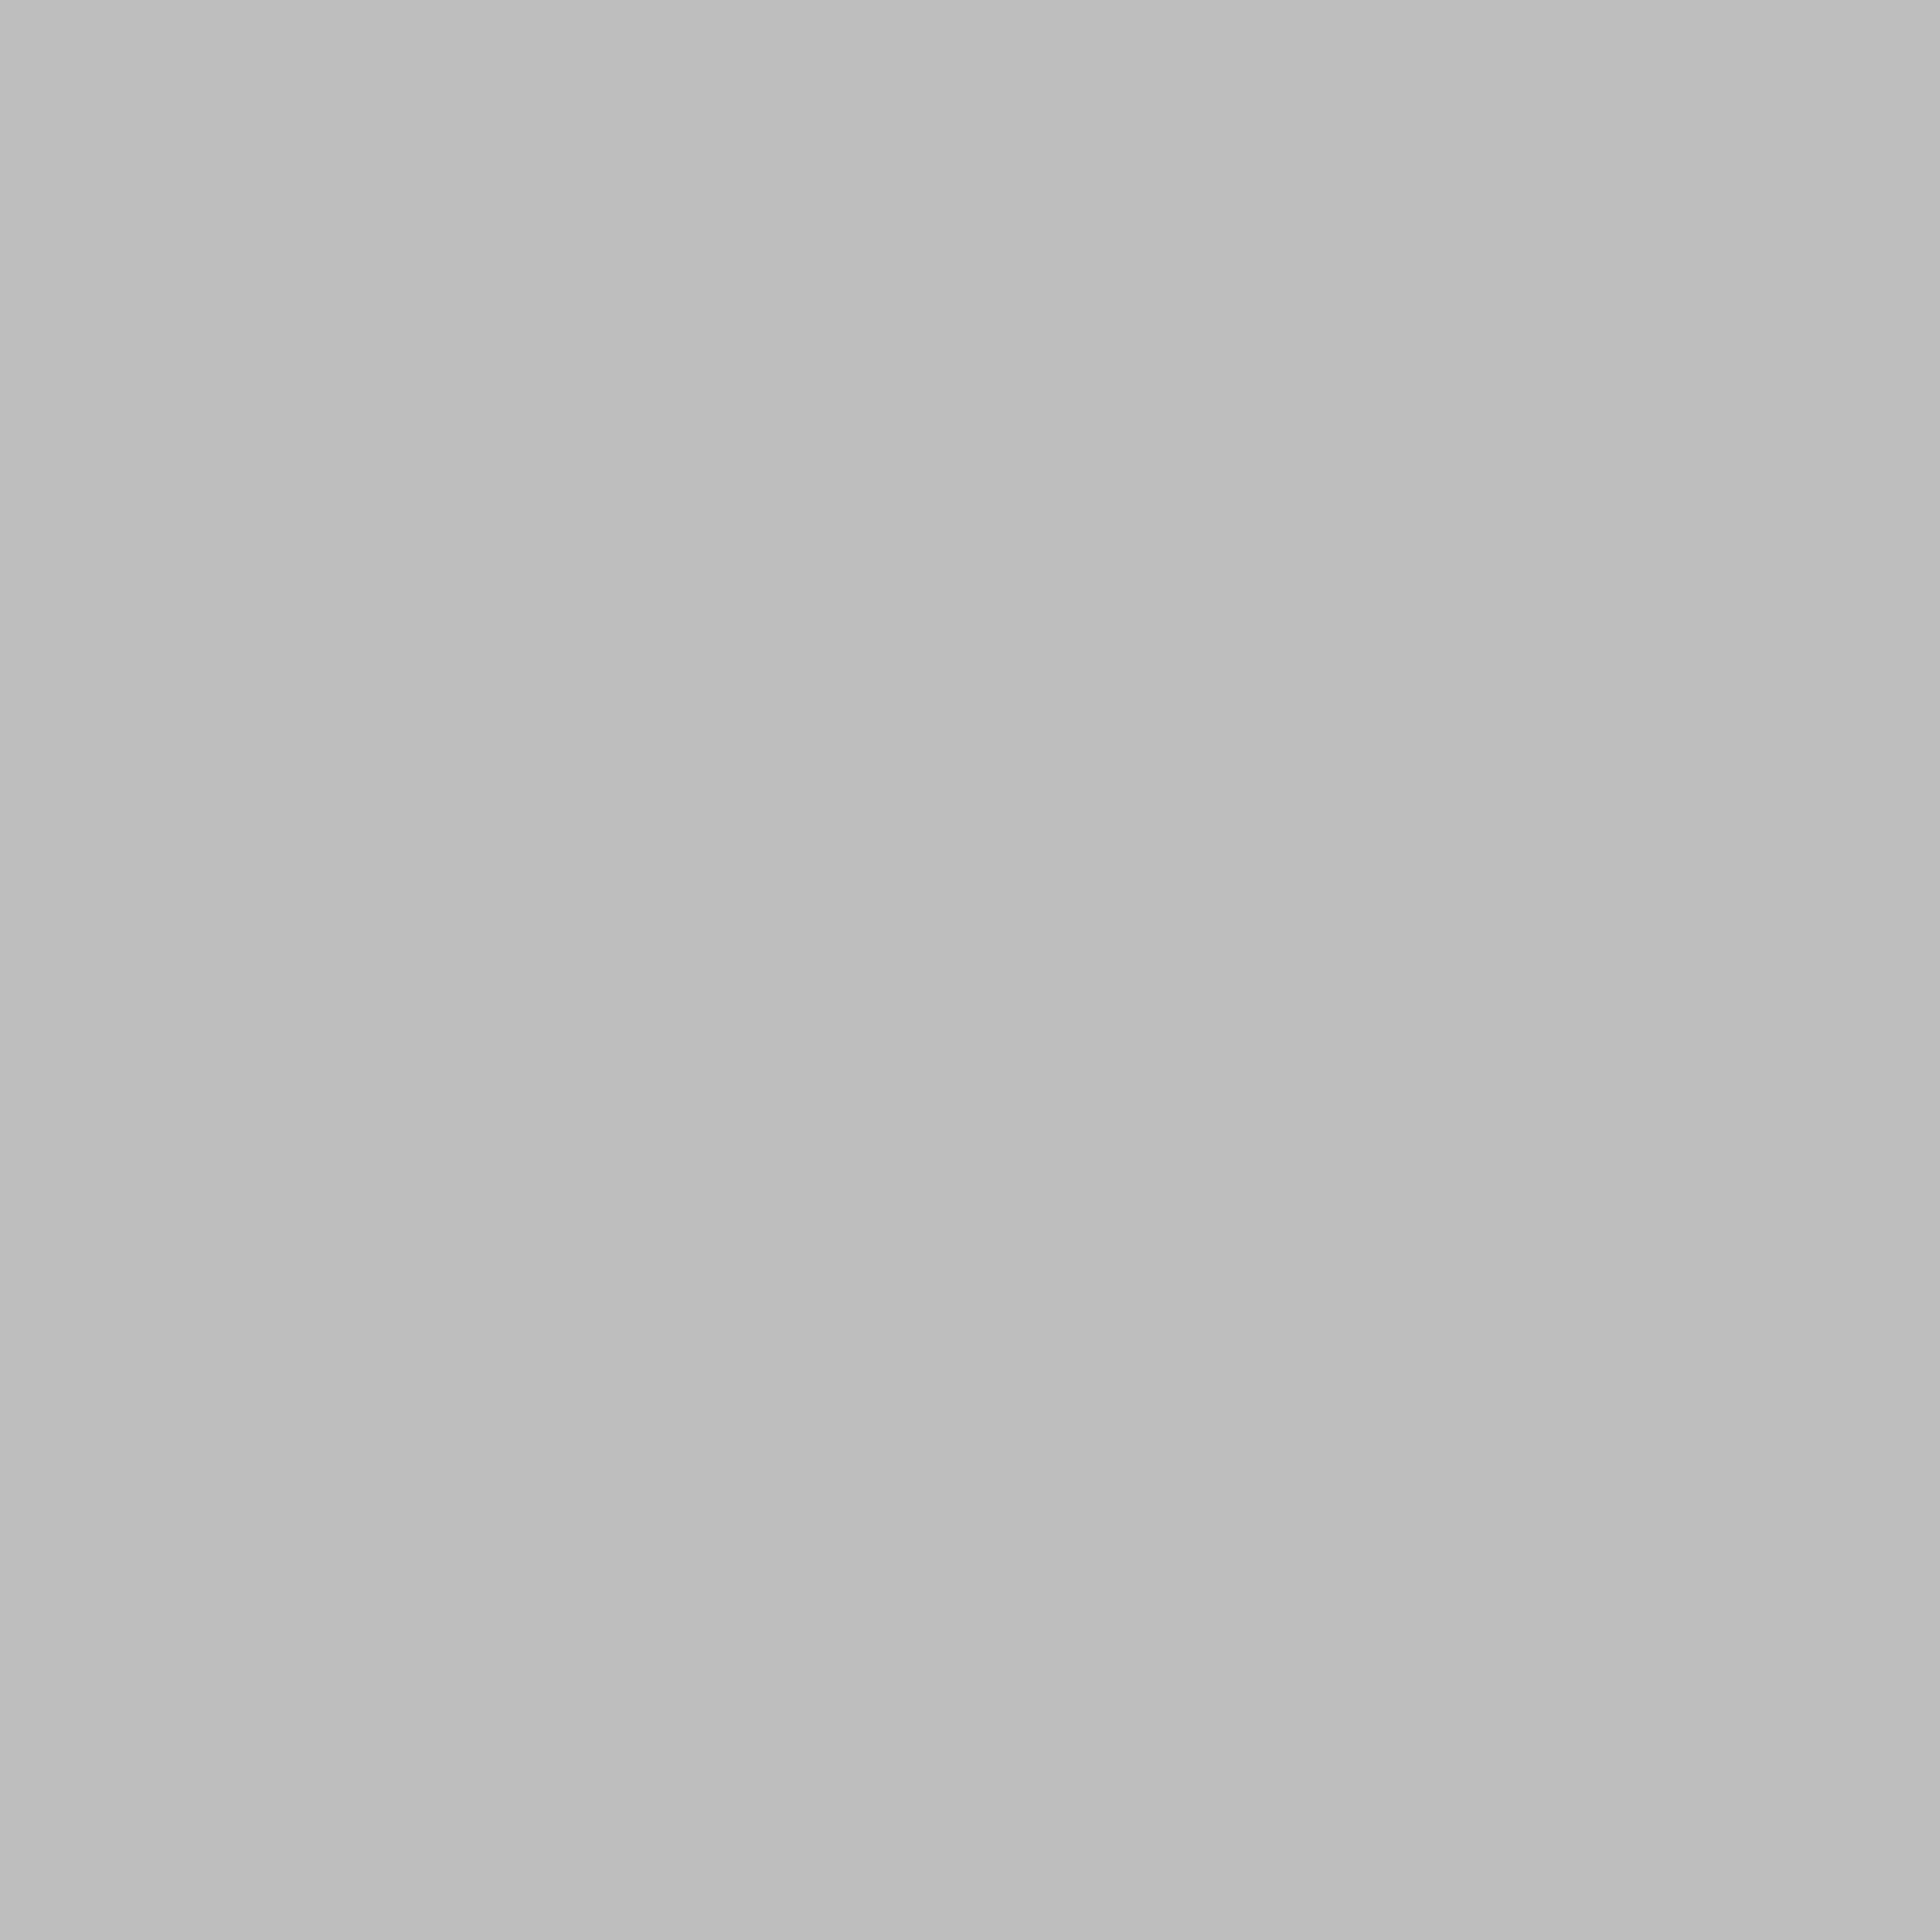 2732x2732 Gray X11 Gui Gray Solid Color Background